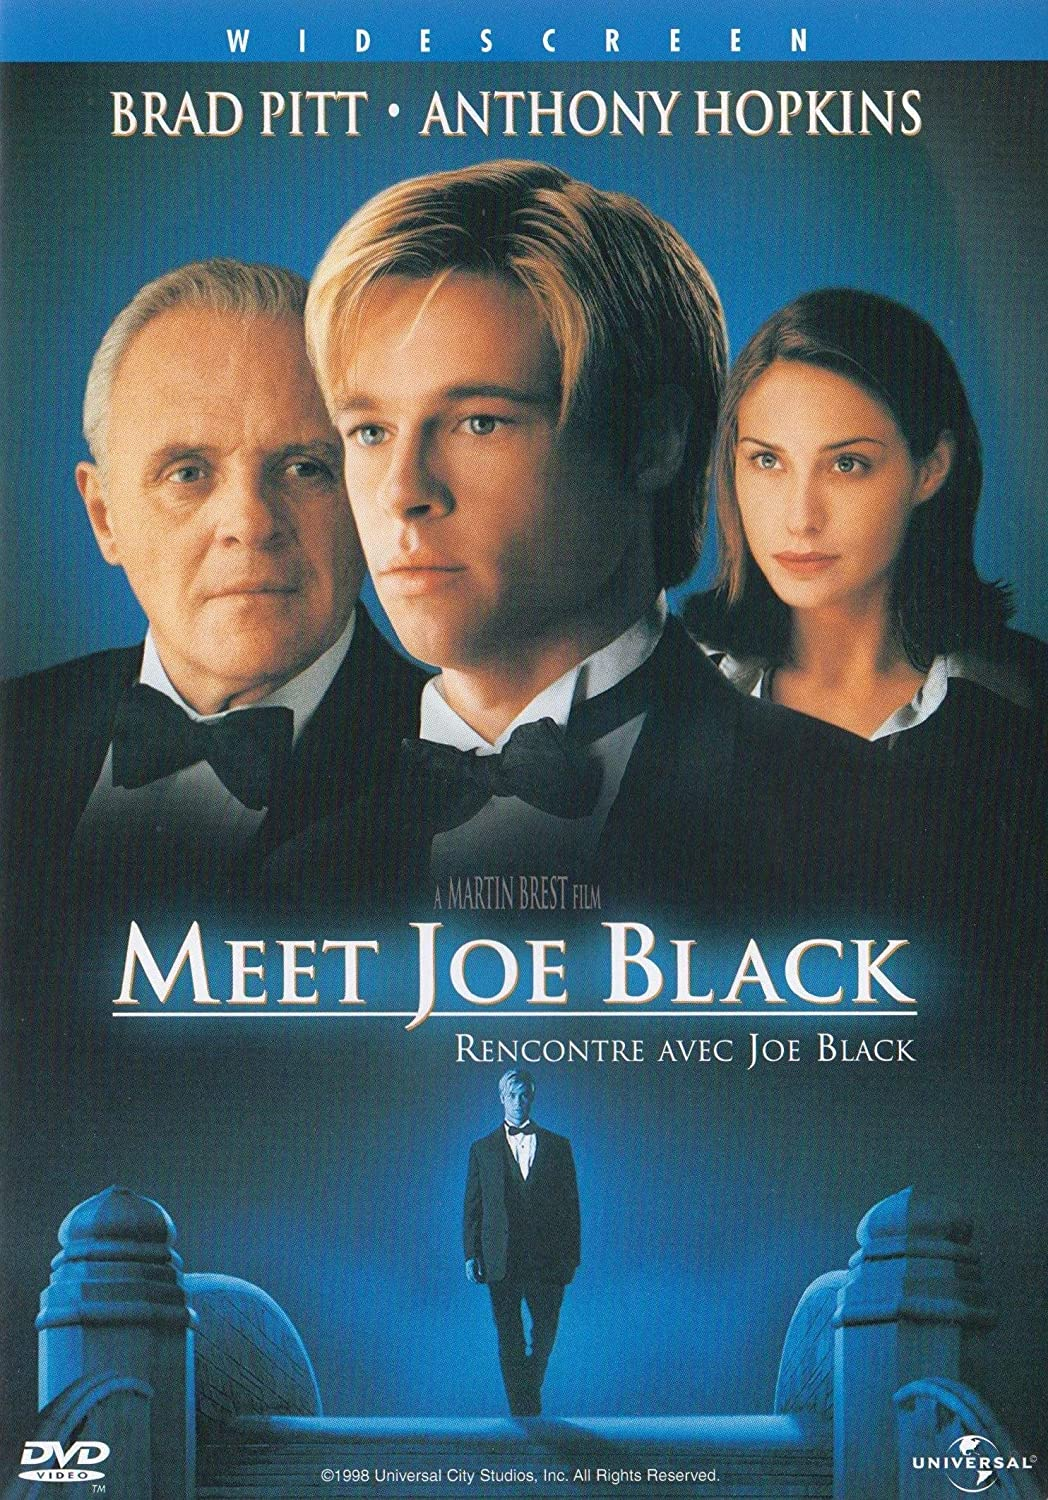 Amazon.com: Meet Joe Black: Brad Pitt, Anthony Hopkins, Claire ...